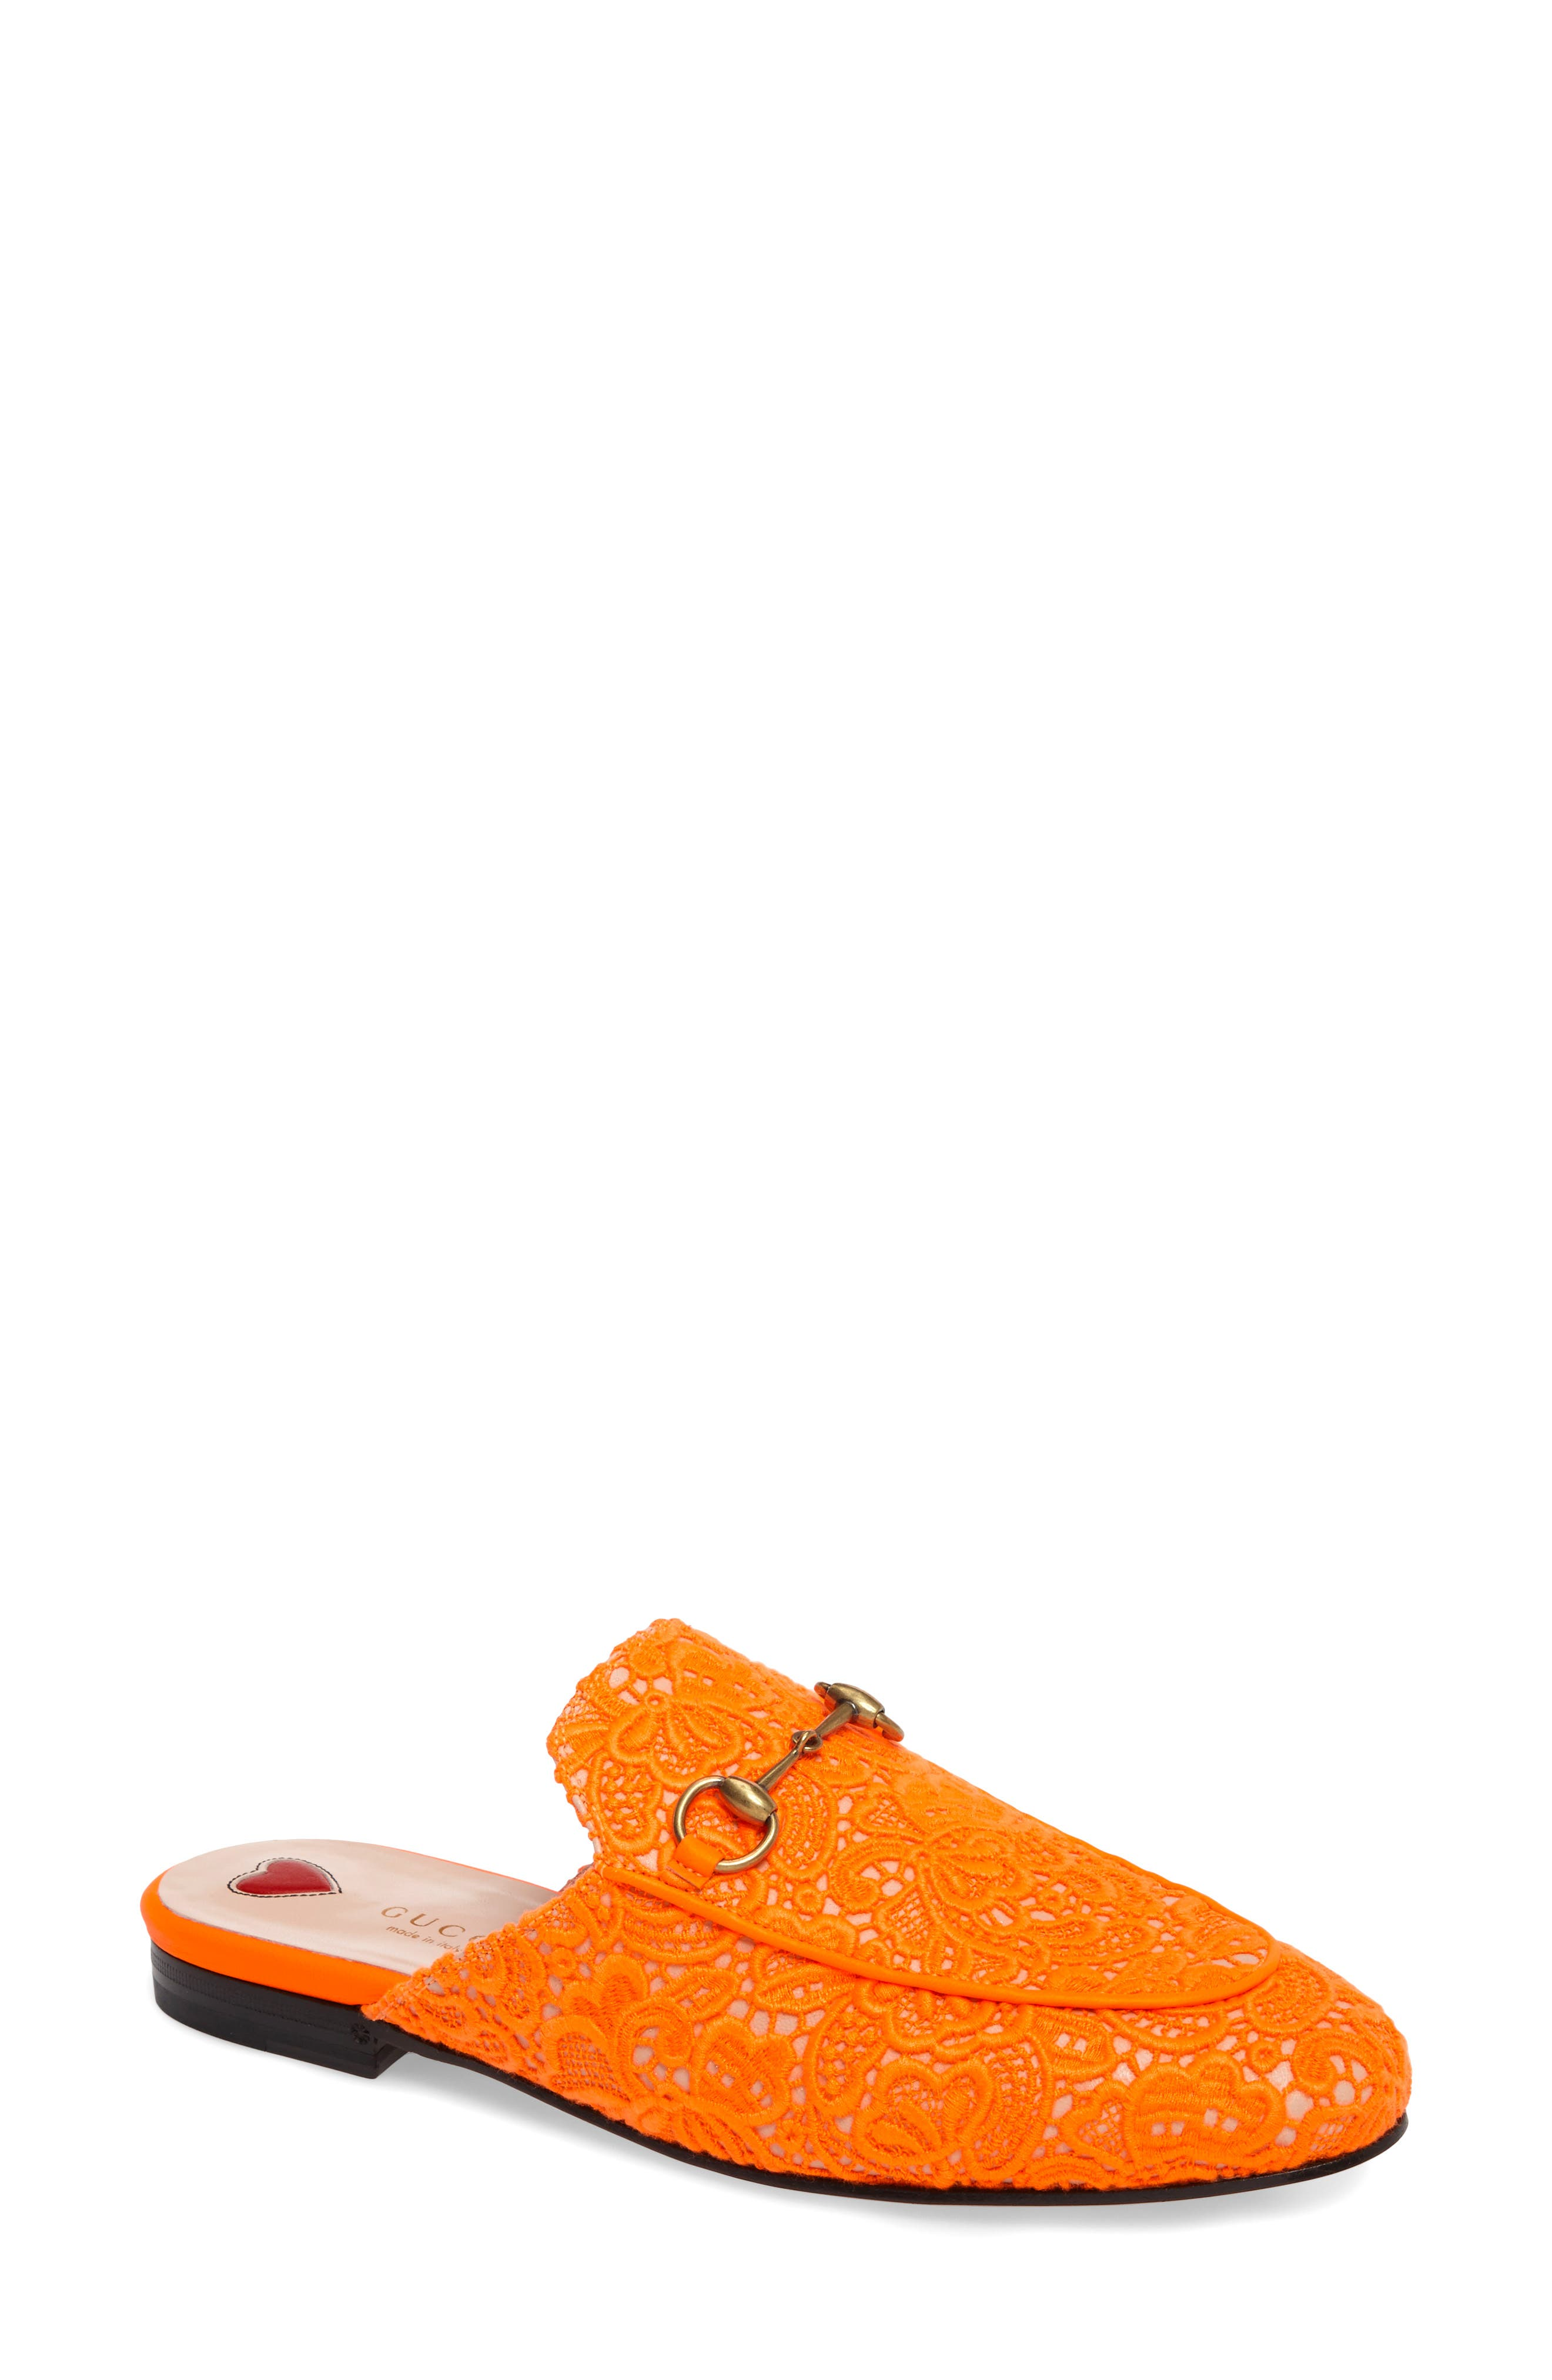 Princetown Loafer Mule,                             Main thumbnail 1, color,                             800